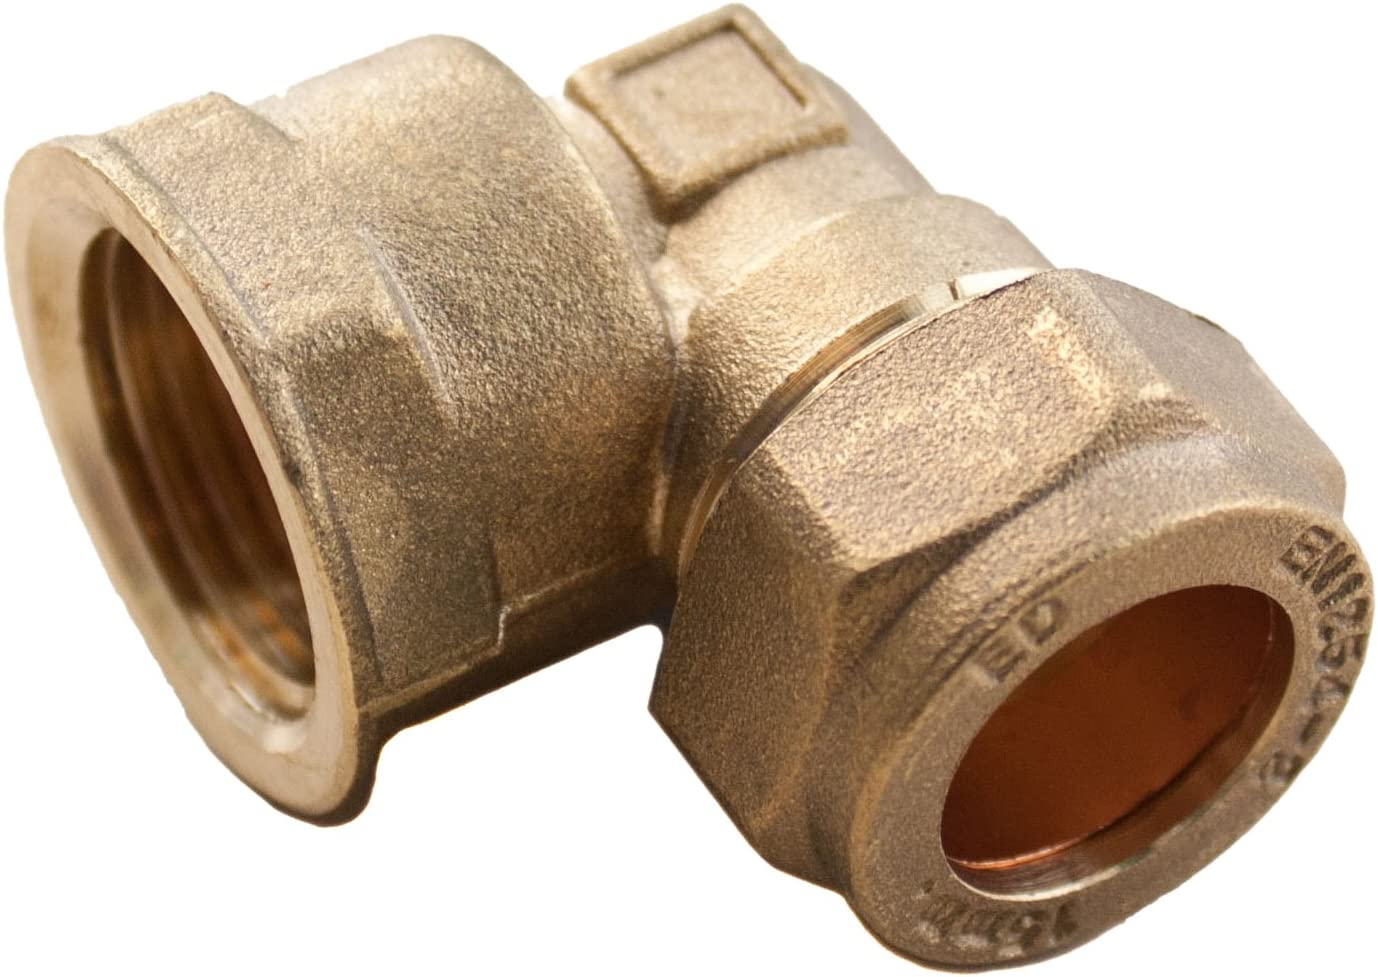 2 x New Compression Reducing Elbow Size 22 x 15mm Brass plumbing fittings